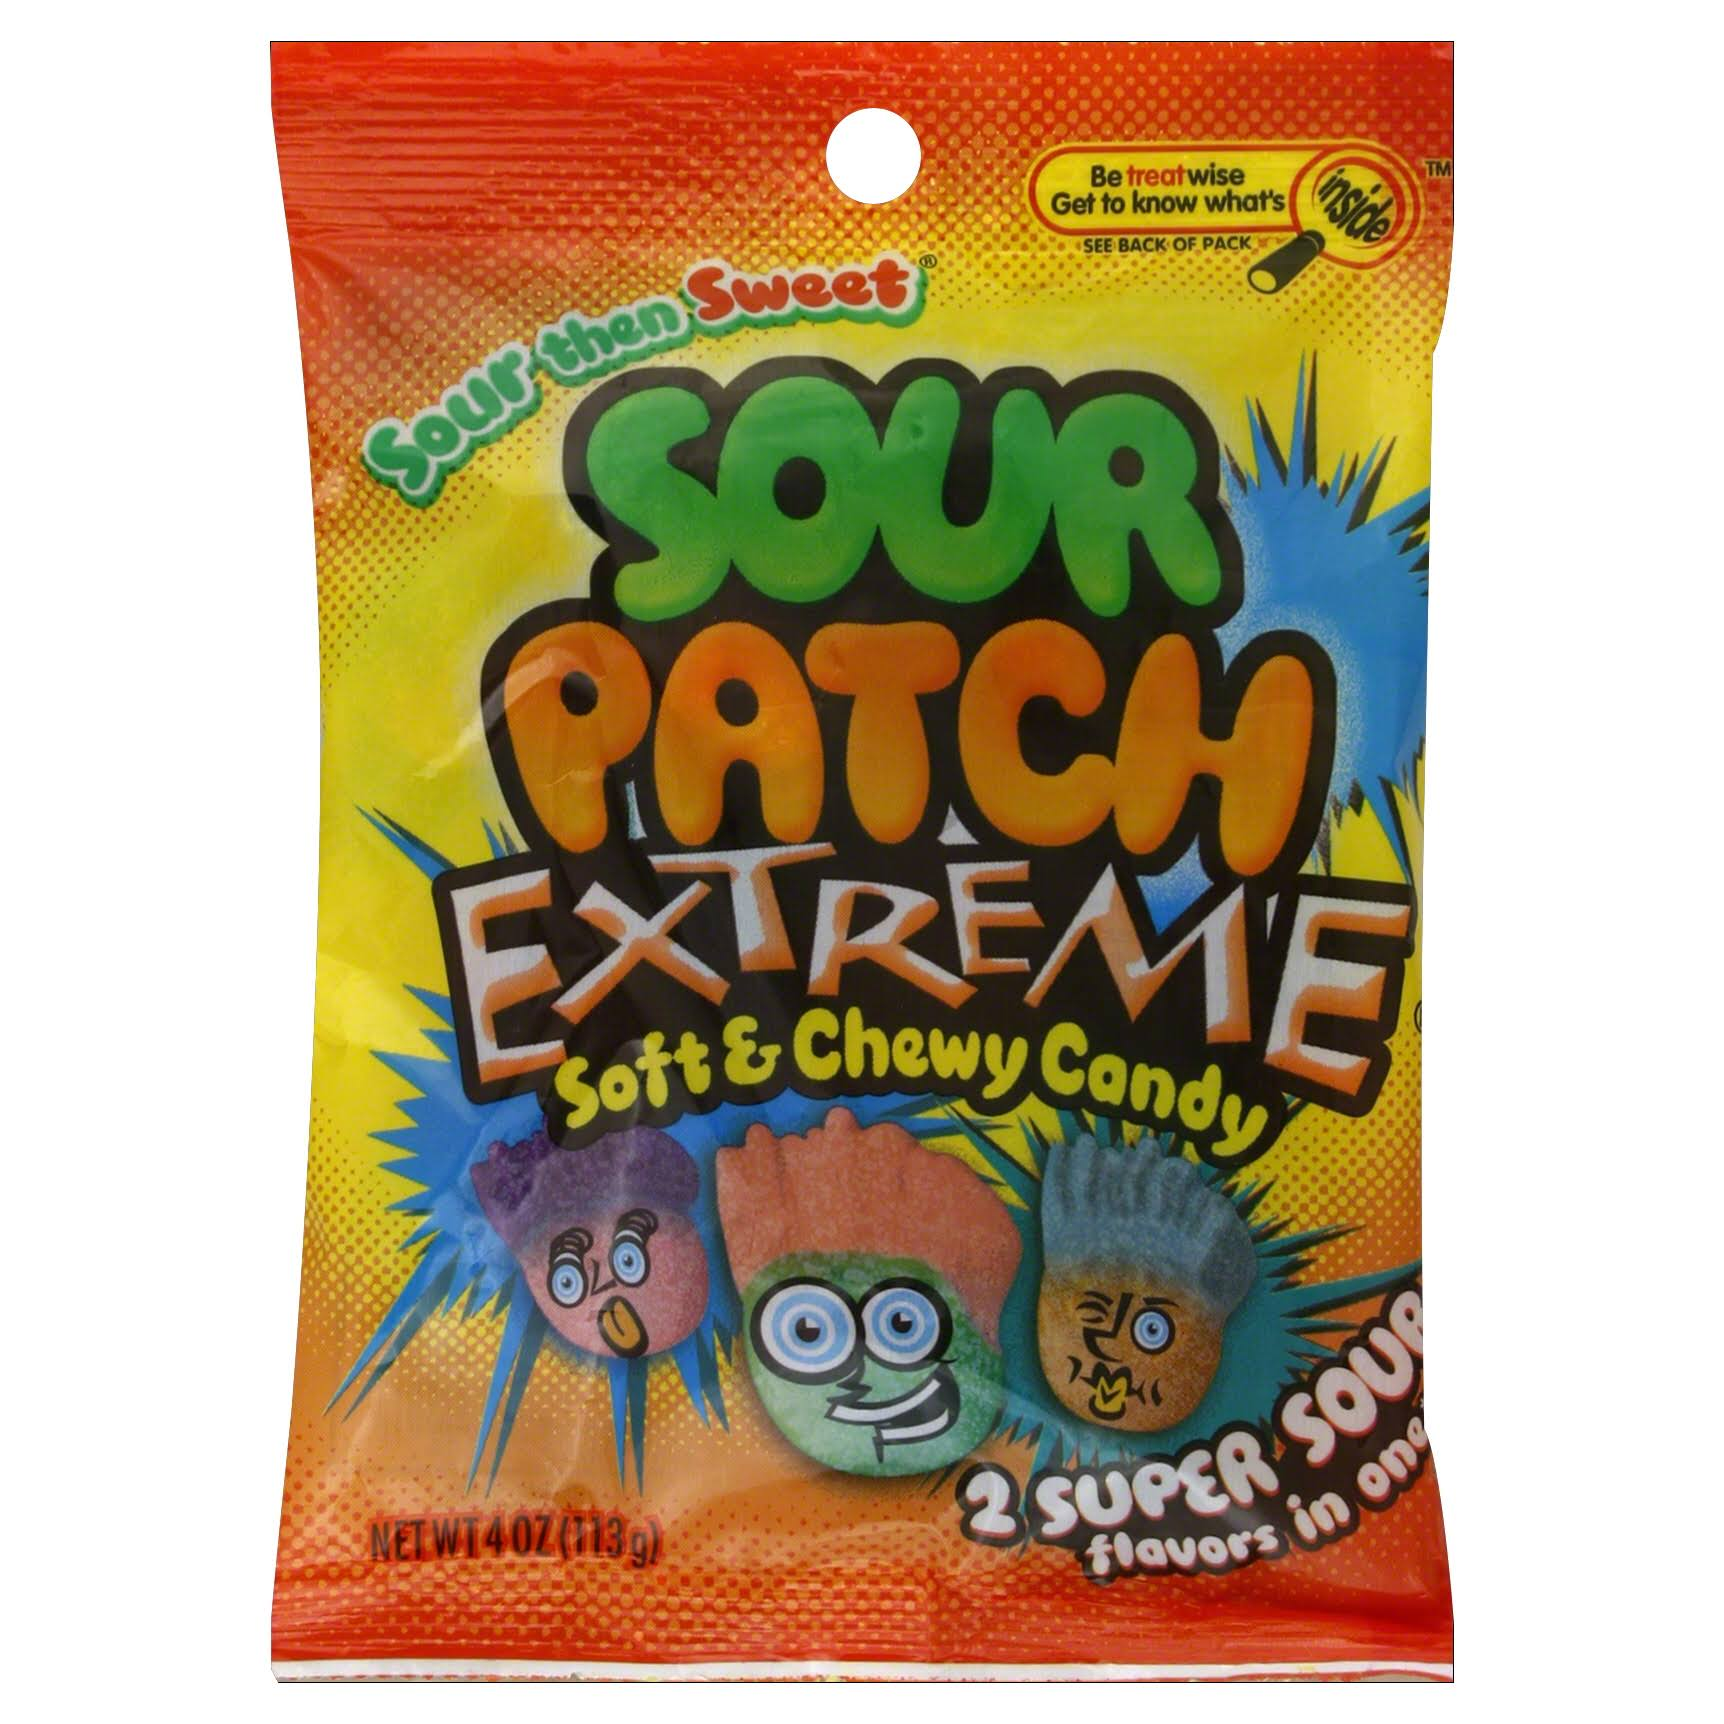 Sour Patch Kids Sweet and Sour Gummy Candy - Extreme, 4oz